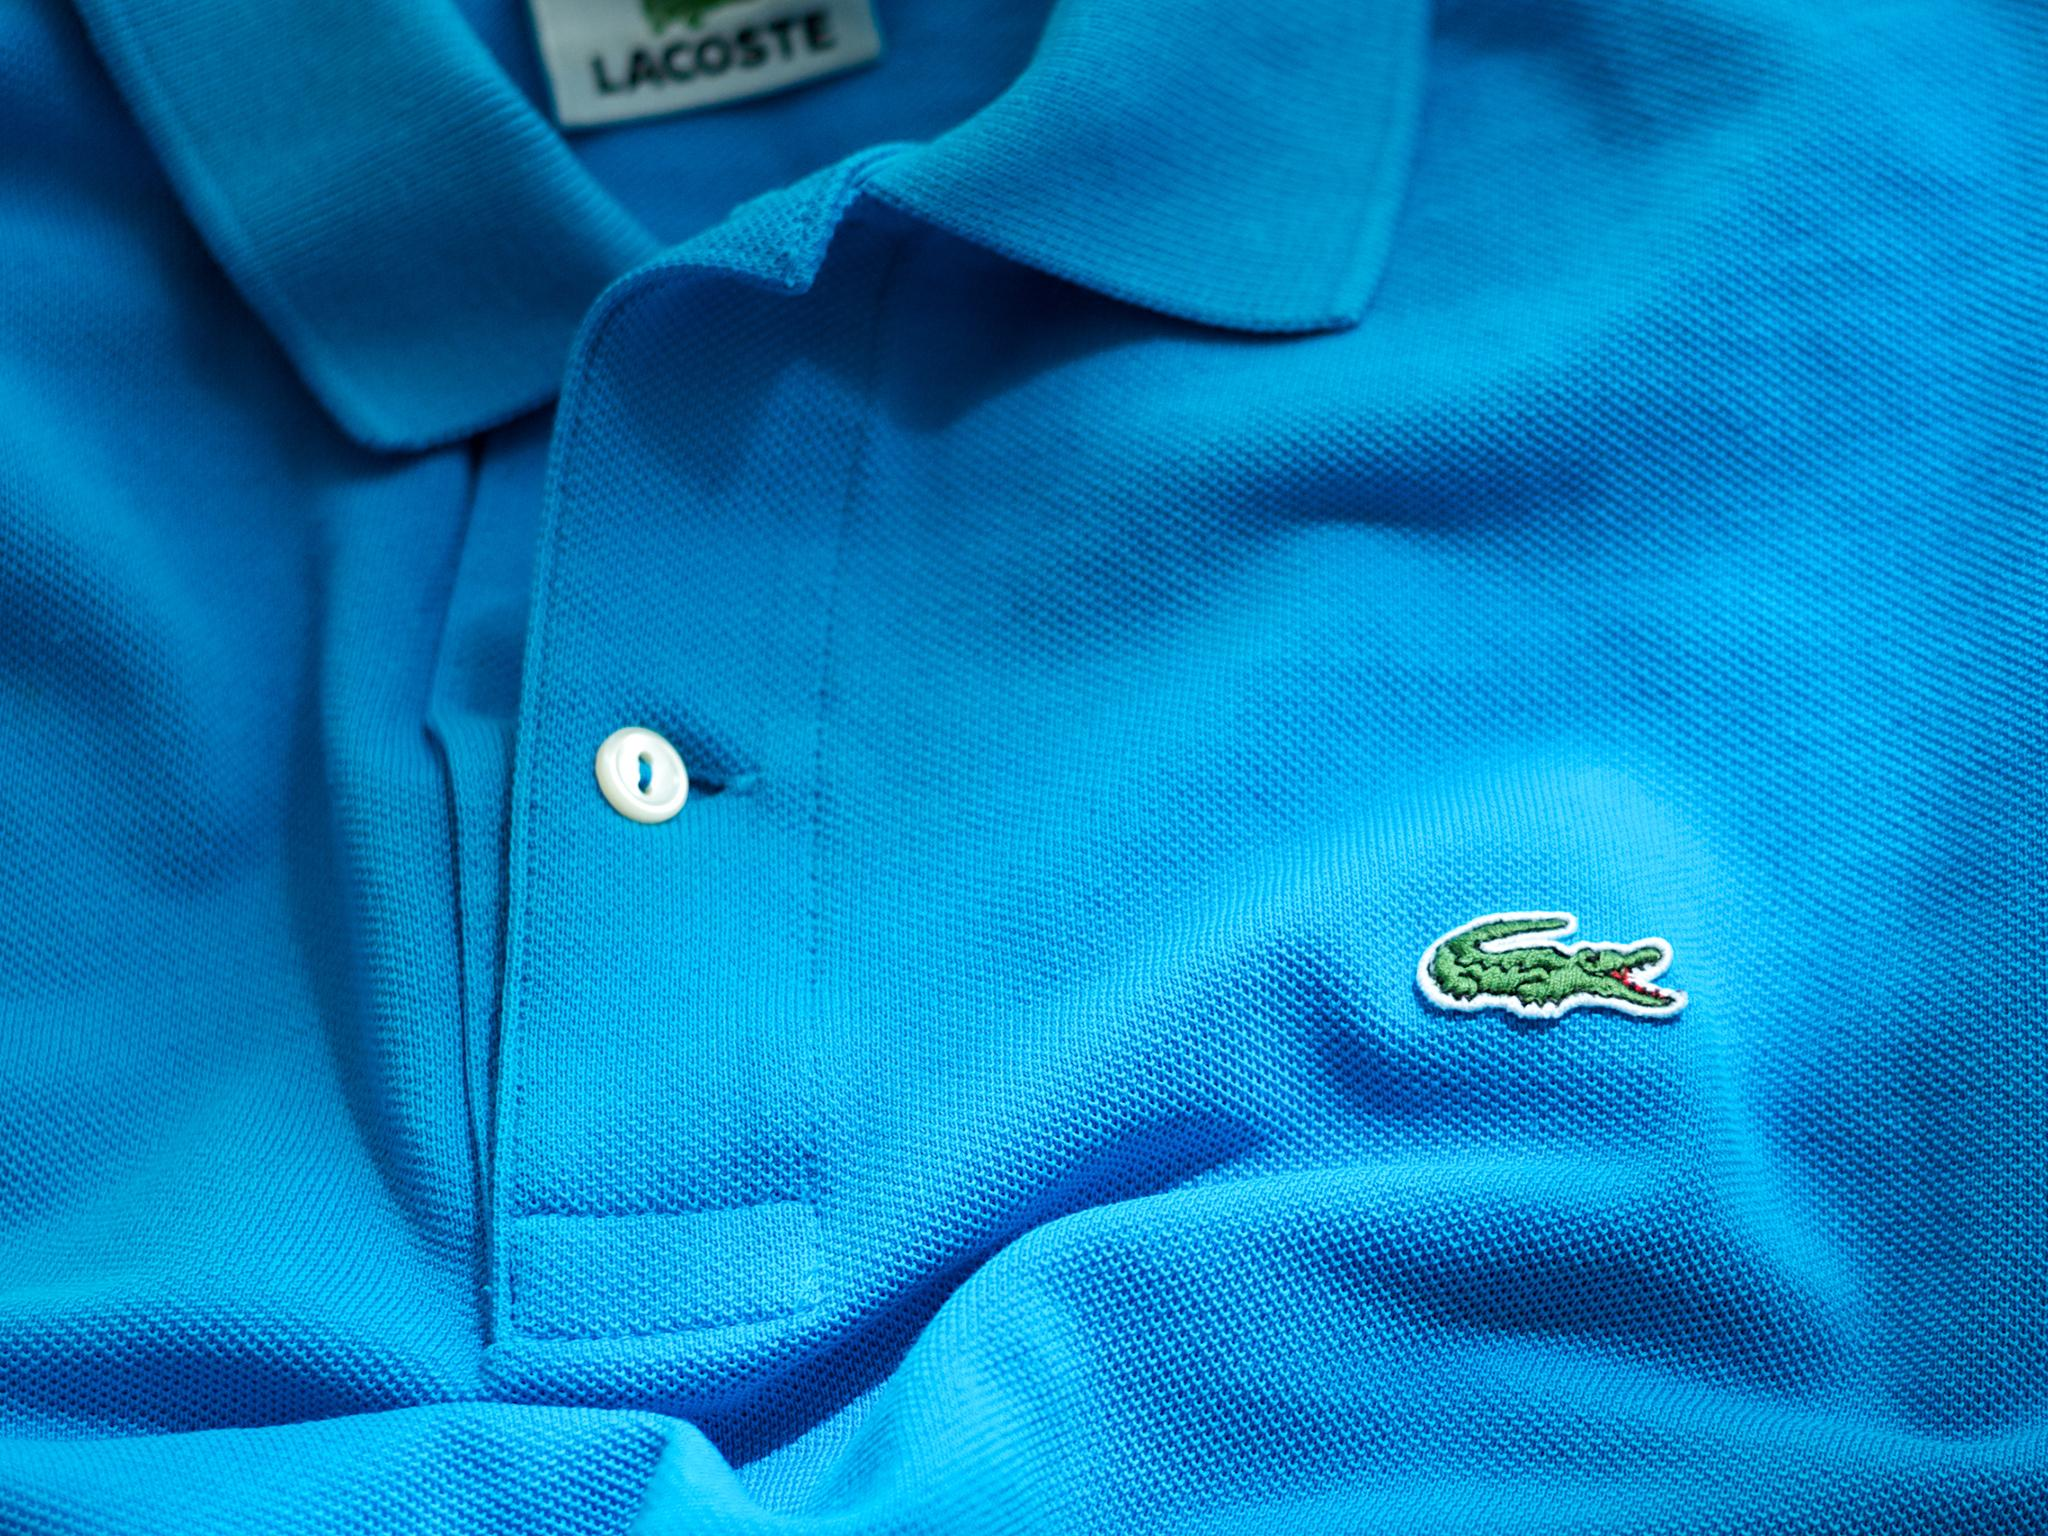 Why people are cutting brand logos off their clothing the why people are cutting brand logos off their clothing the independent buycottarizona Image collections